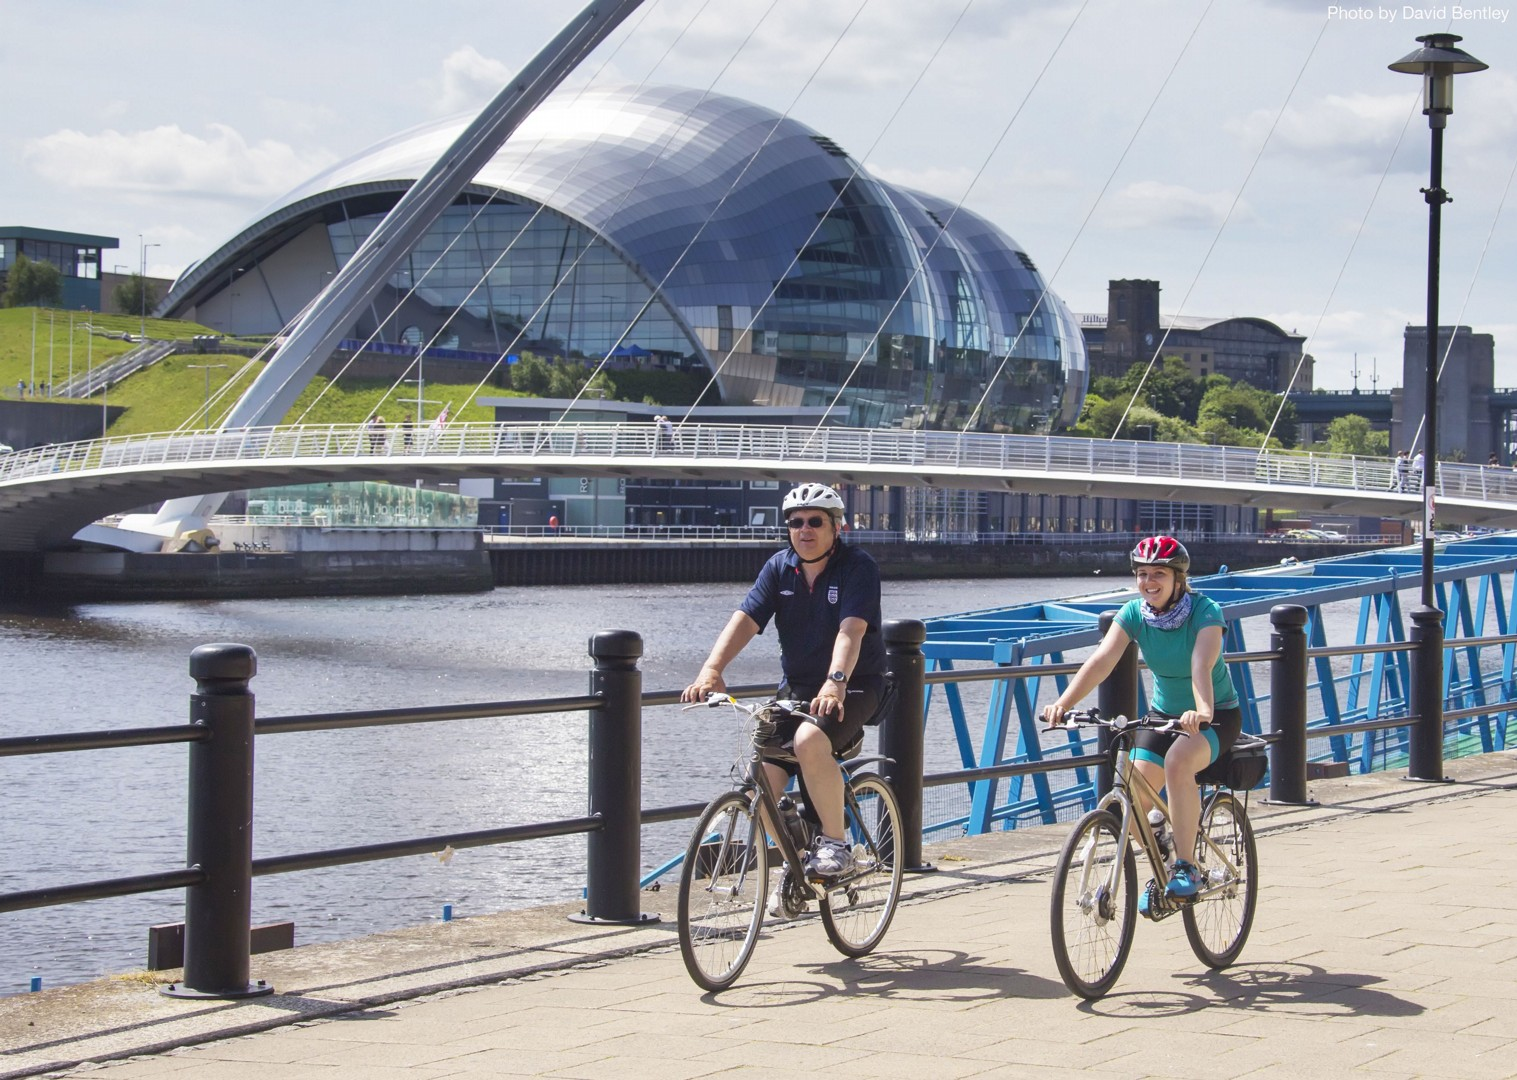 Self-Guided-Leisure-Cycling-Holiday-Hadrians-Cycleway-UK-cycle-Newcastle.jpg - UK - Hadrian's Cycleway - 3 Days Cycling - Self-Guided Leisure Cycling Holiday - Leisure Cycling